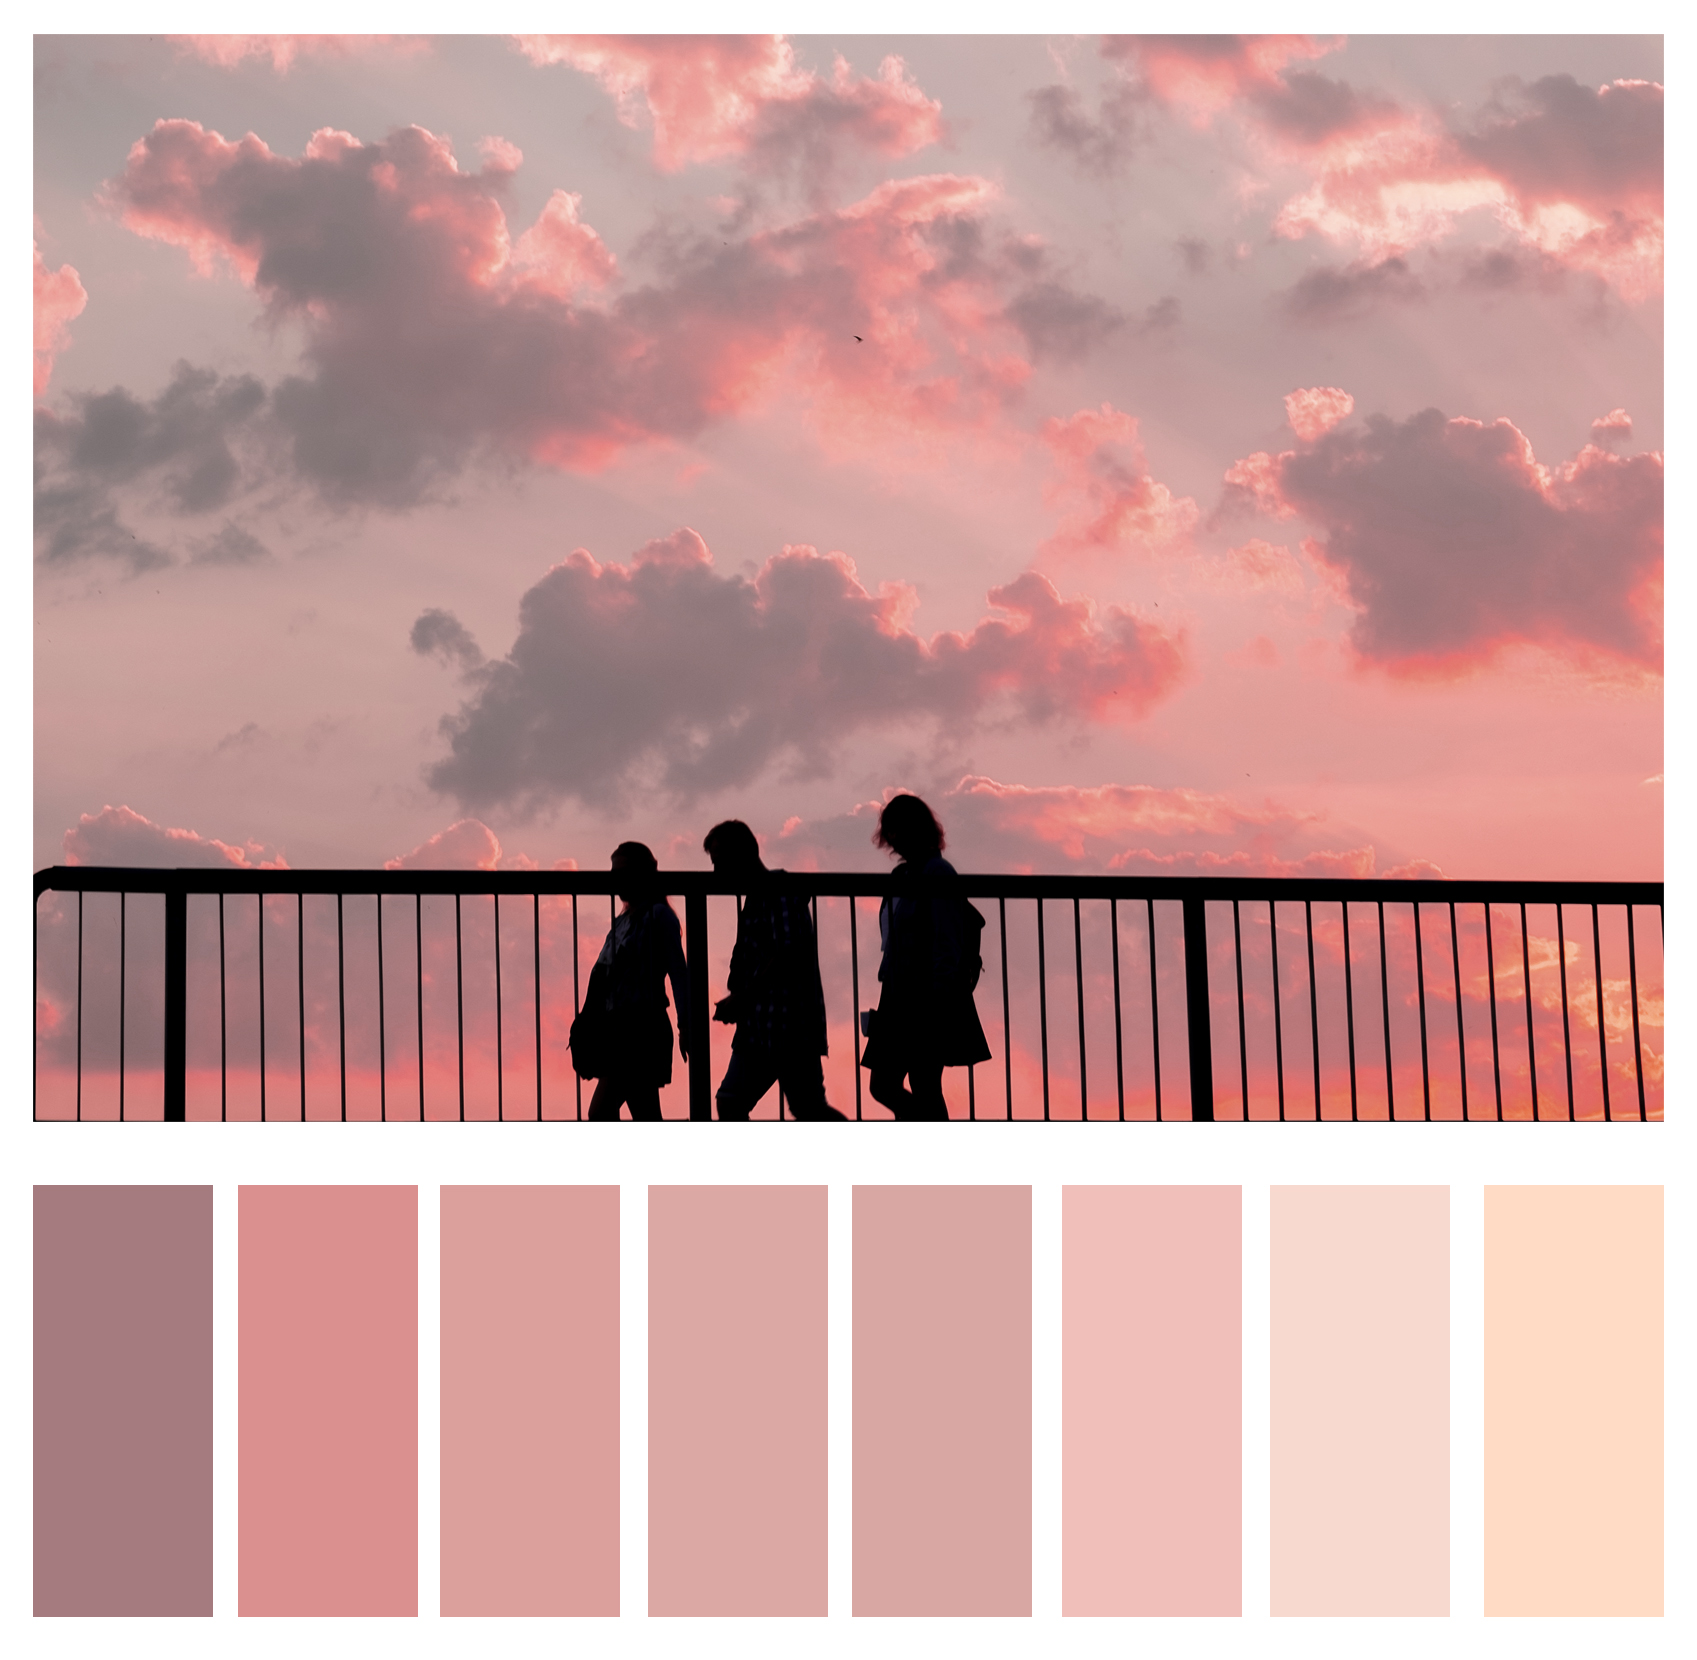 Figure 5c: Shades of pink.